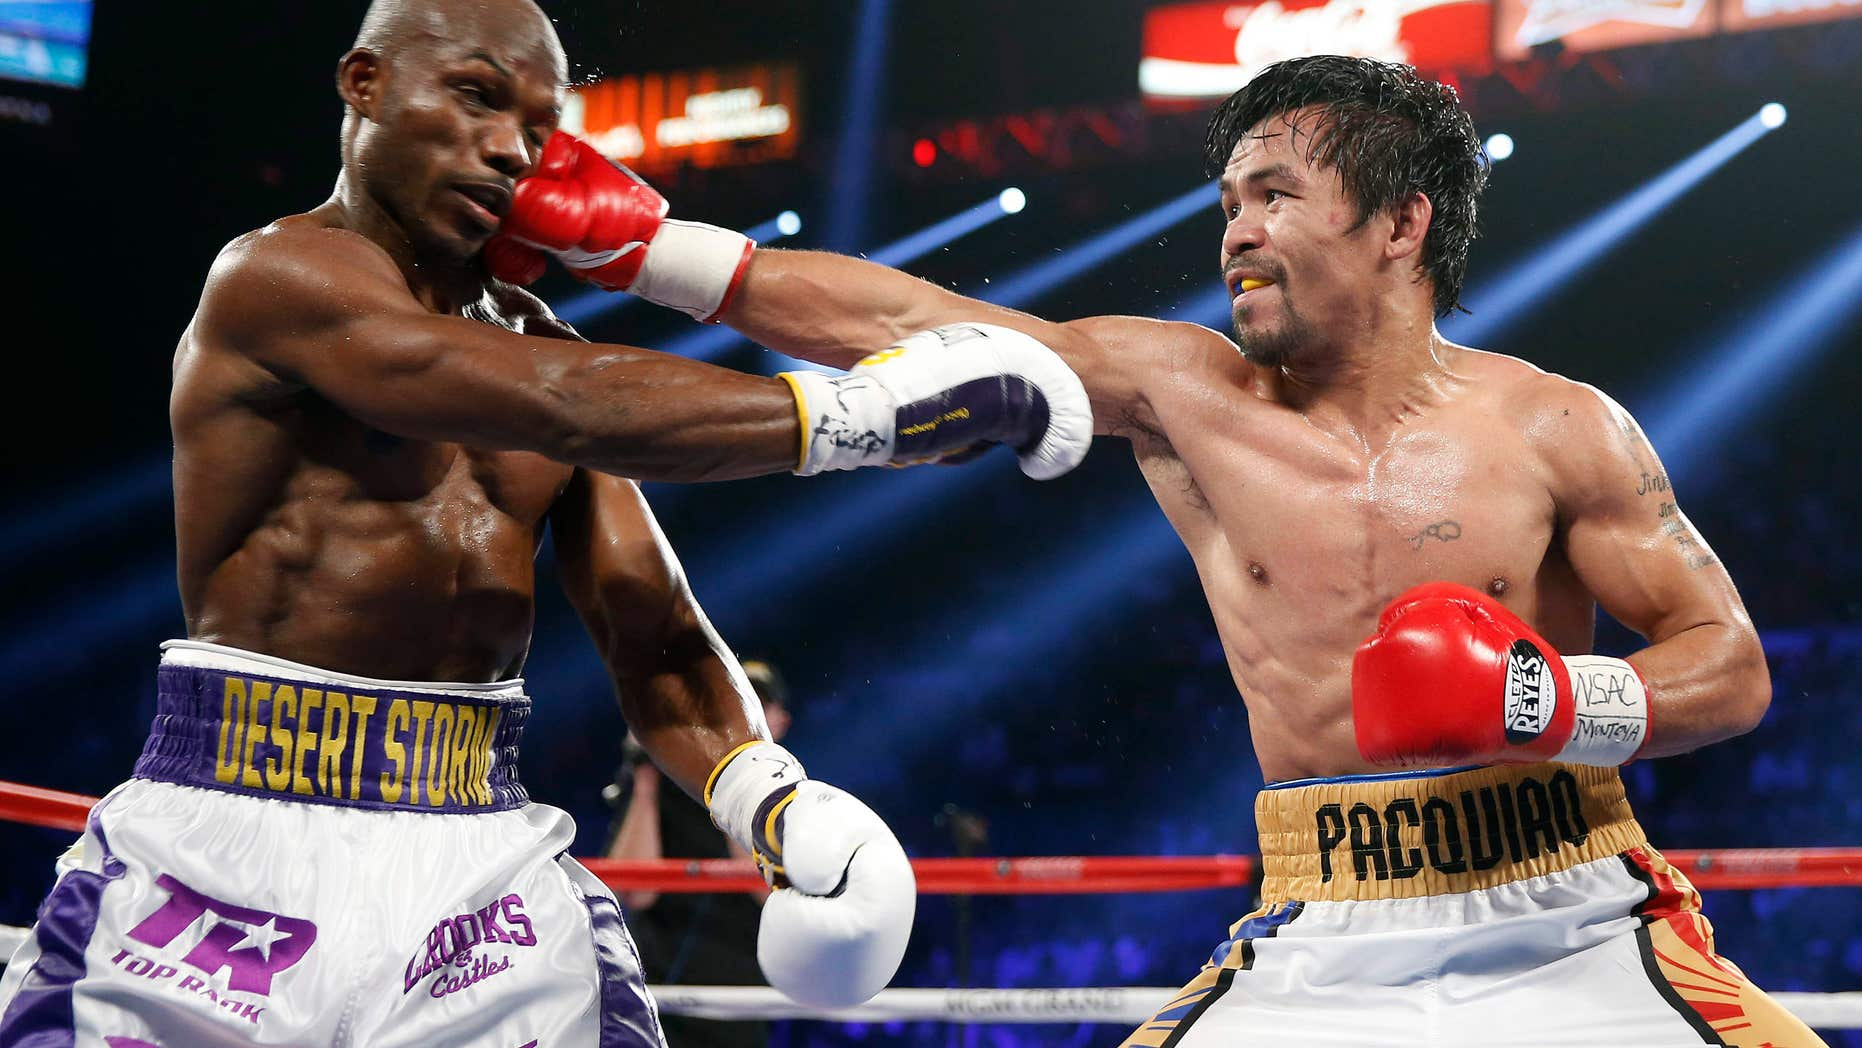 Manny Pacquiao, right, of the Philippines, hits Timothy Bradley during their WBO welterweight title boxing bout Saturday, April 9, 2016, in Las Vegas.